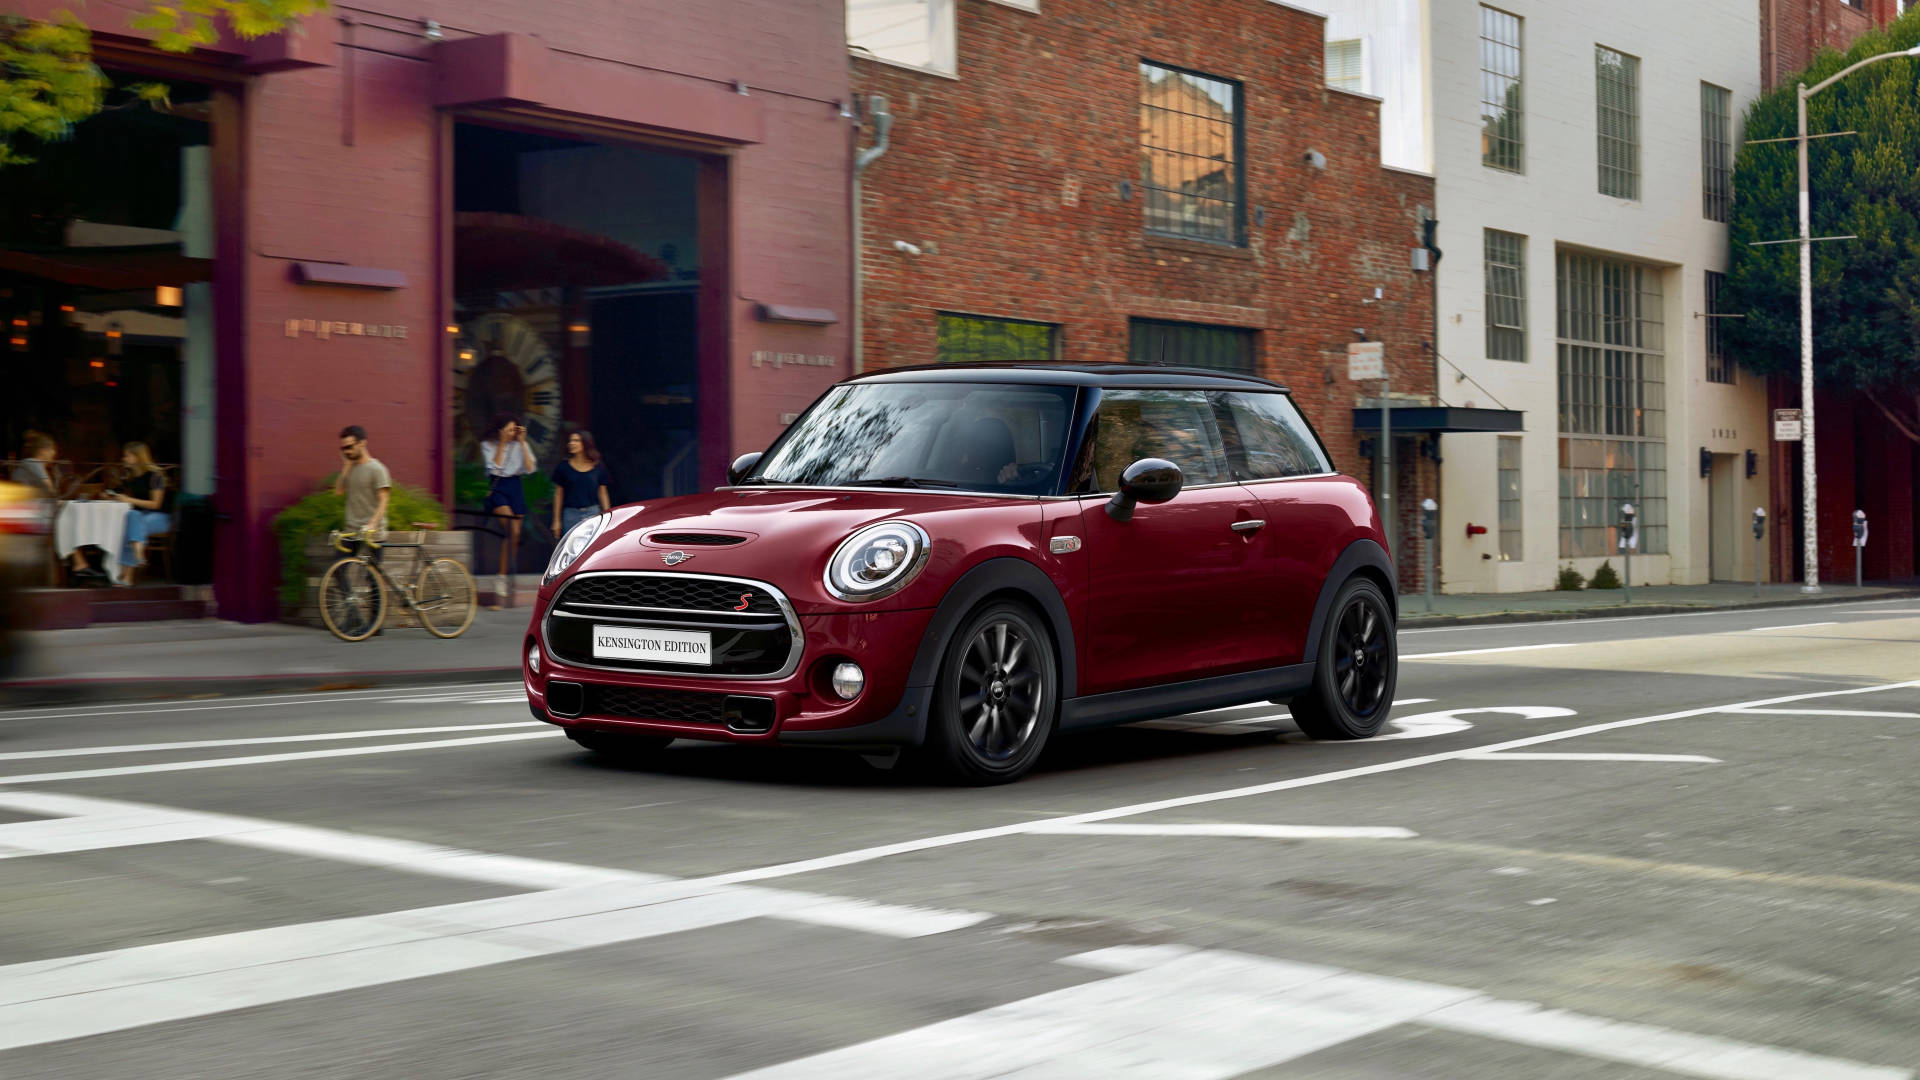 2019 MINI Cooper S Kensington Edition front 3/4 far